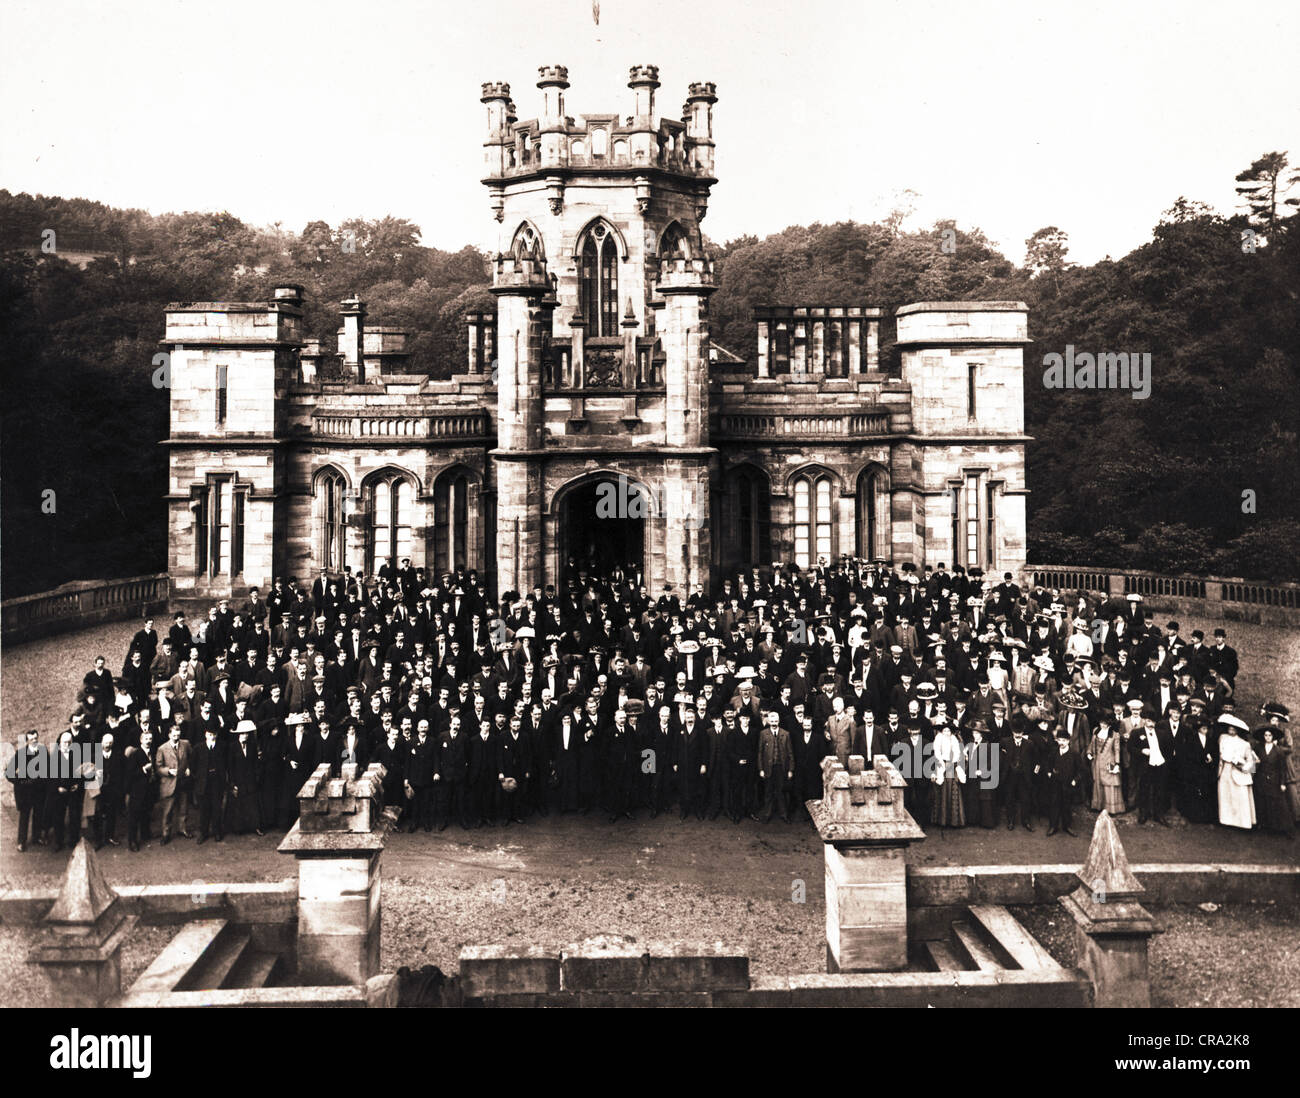 Gothic Revival Castle with Huge Multitude of People - Stock Image